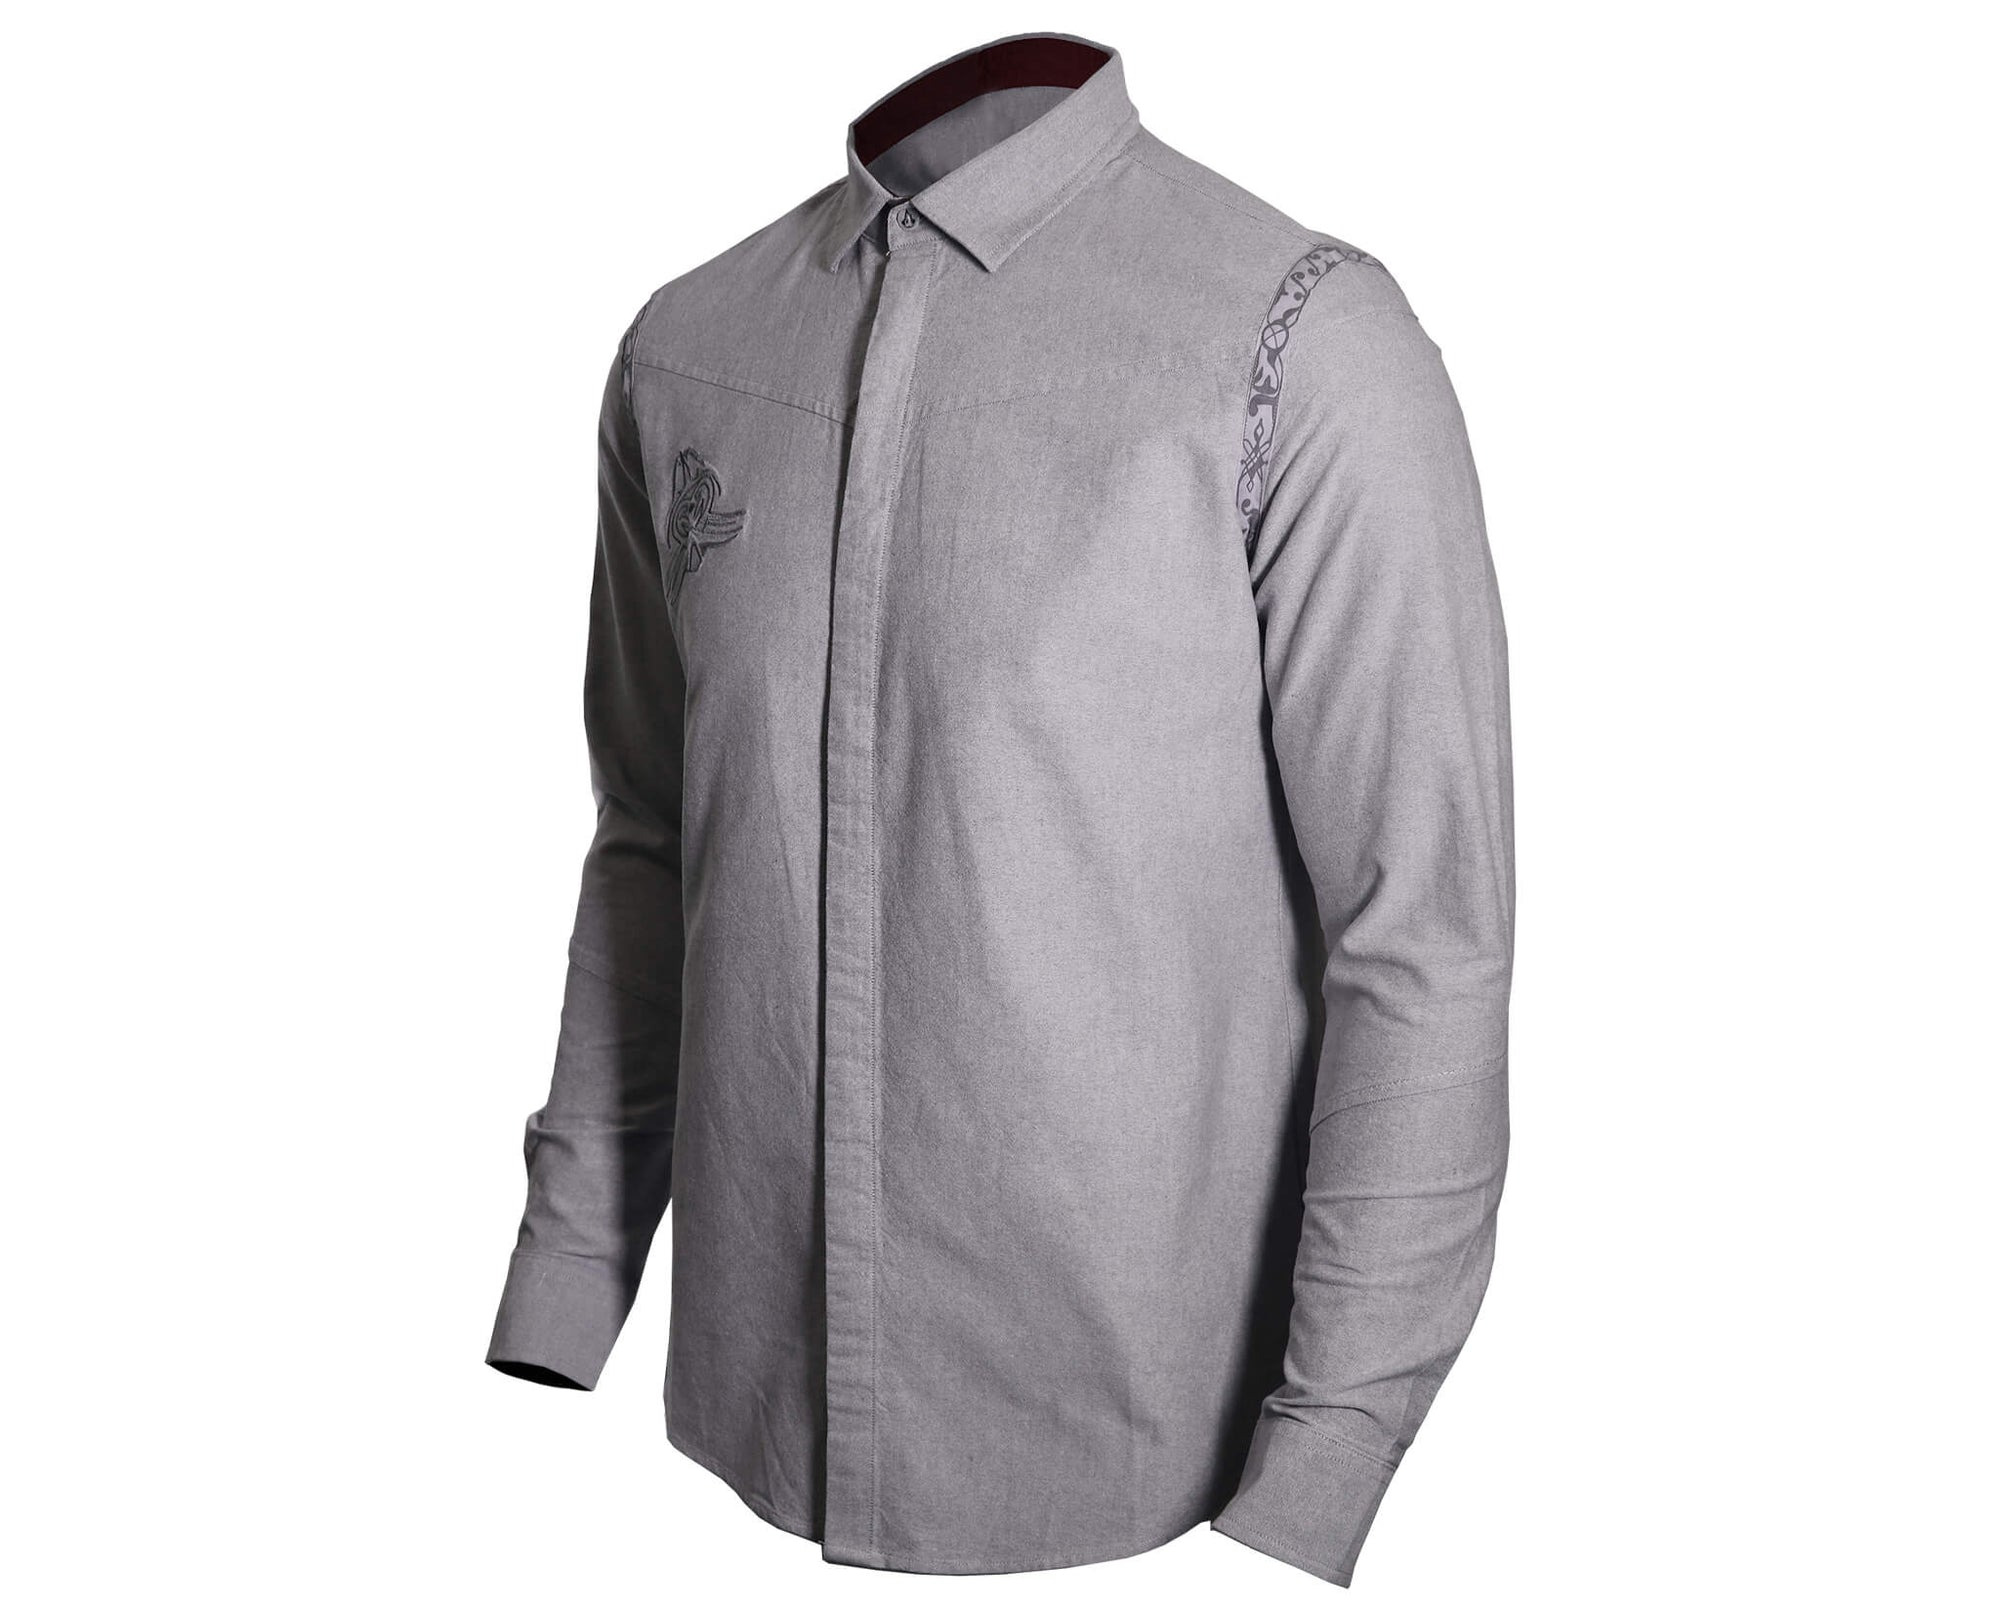 Altair Dress Shirt - Assassin's Creed Legacy